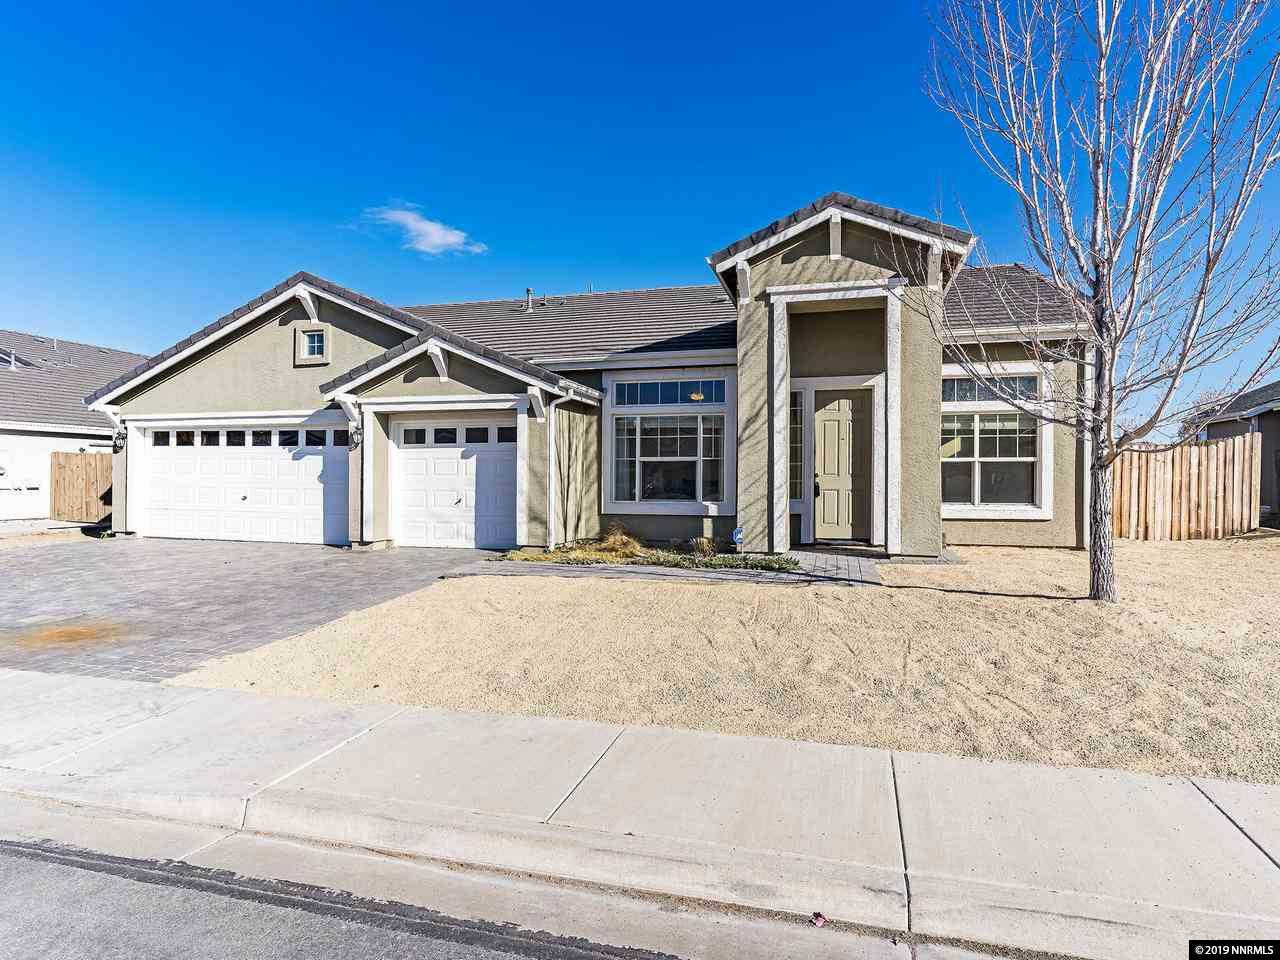 17880 Thunder River Drive, Reno, NV 89508 now has a new price of $359,000!